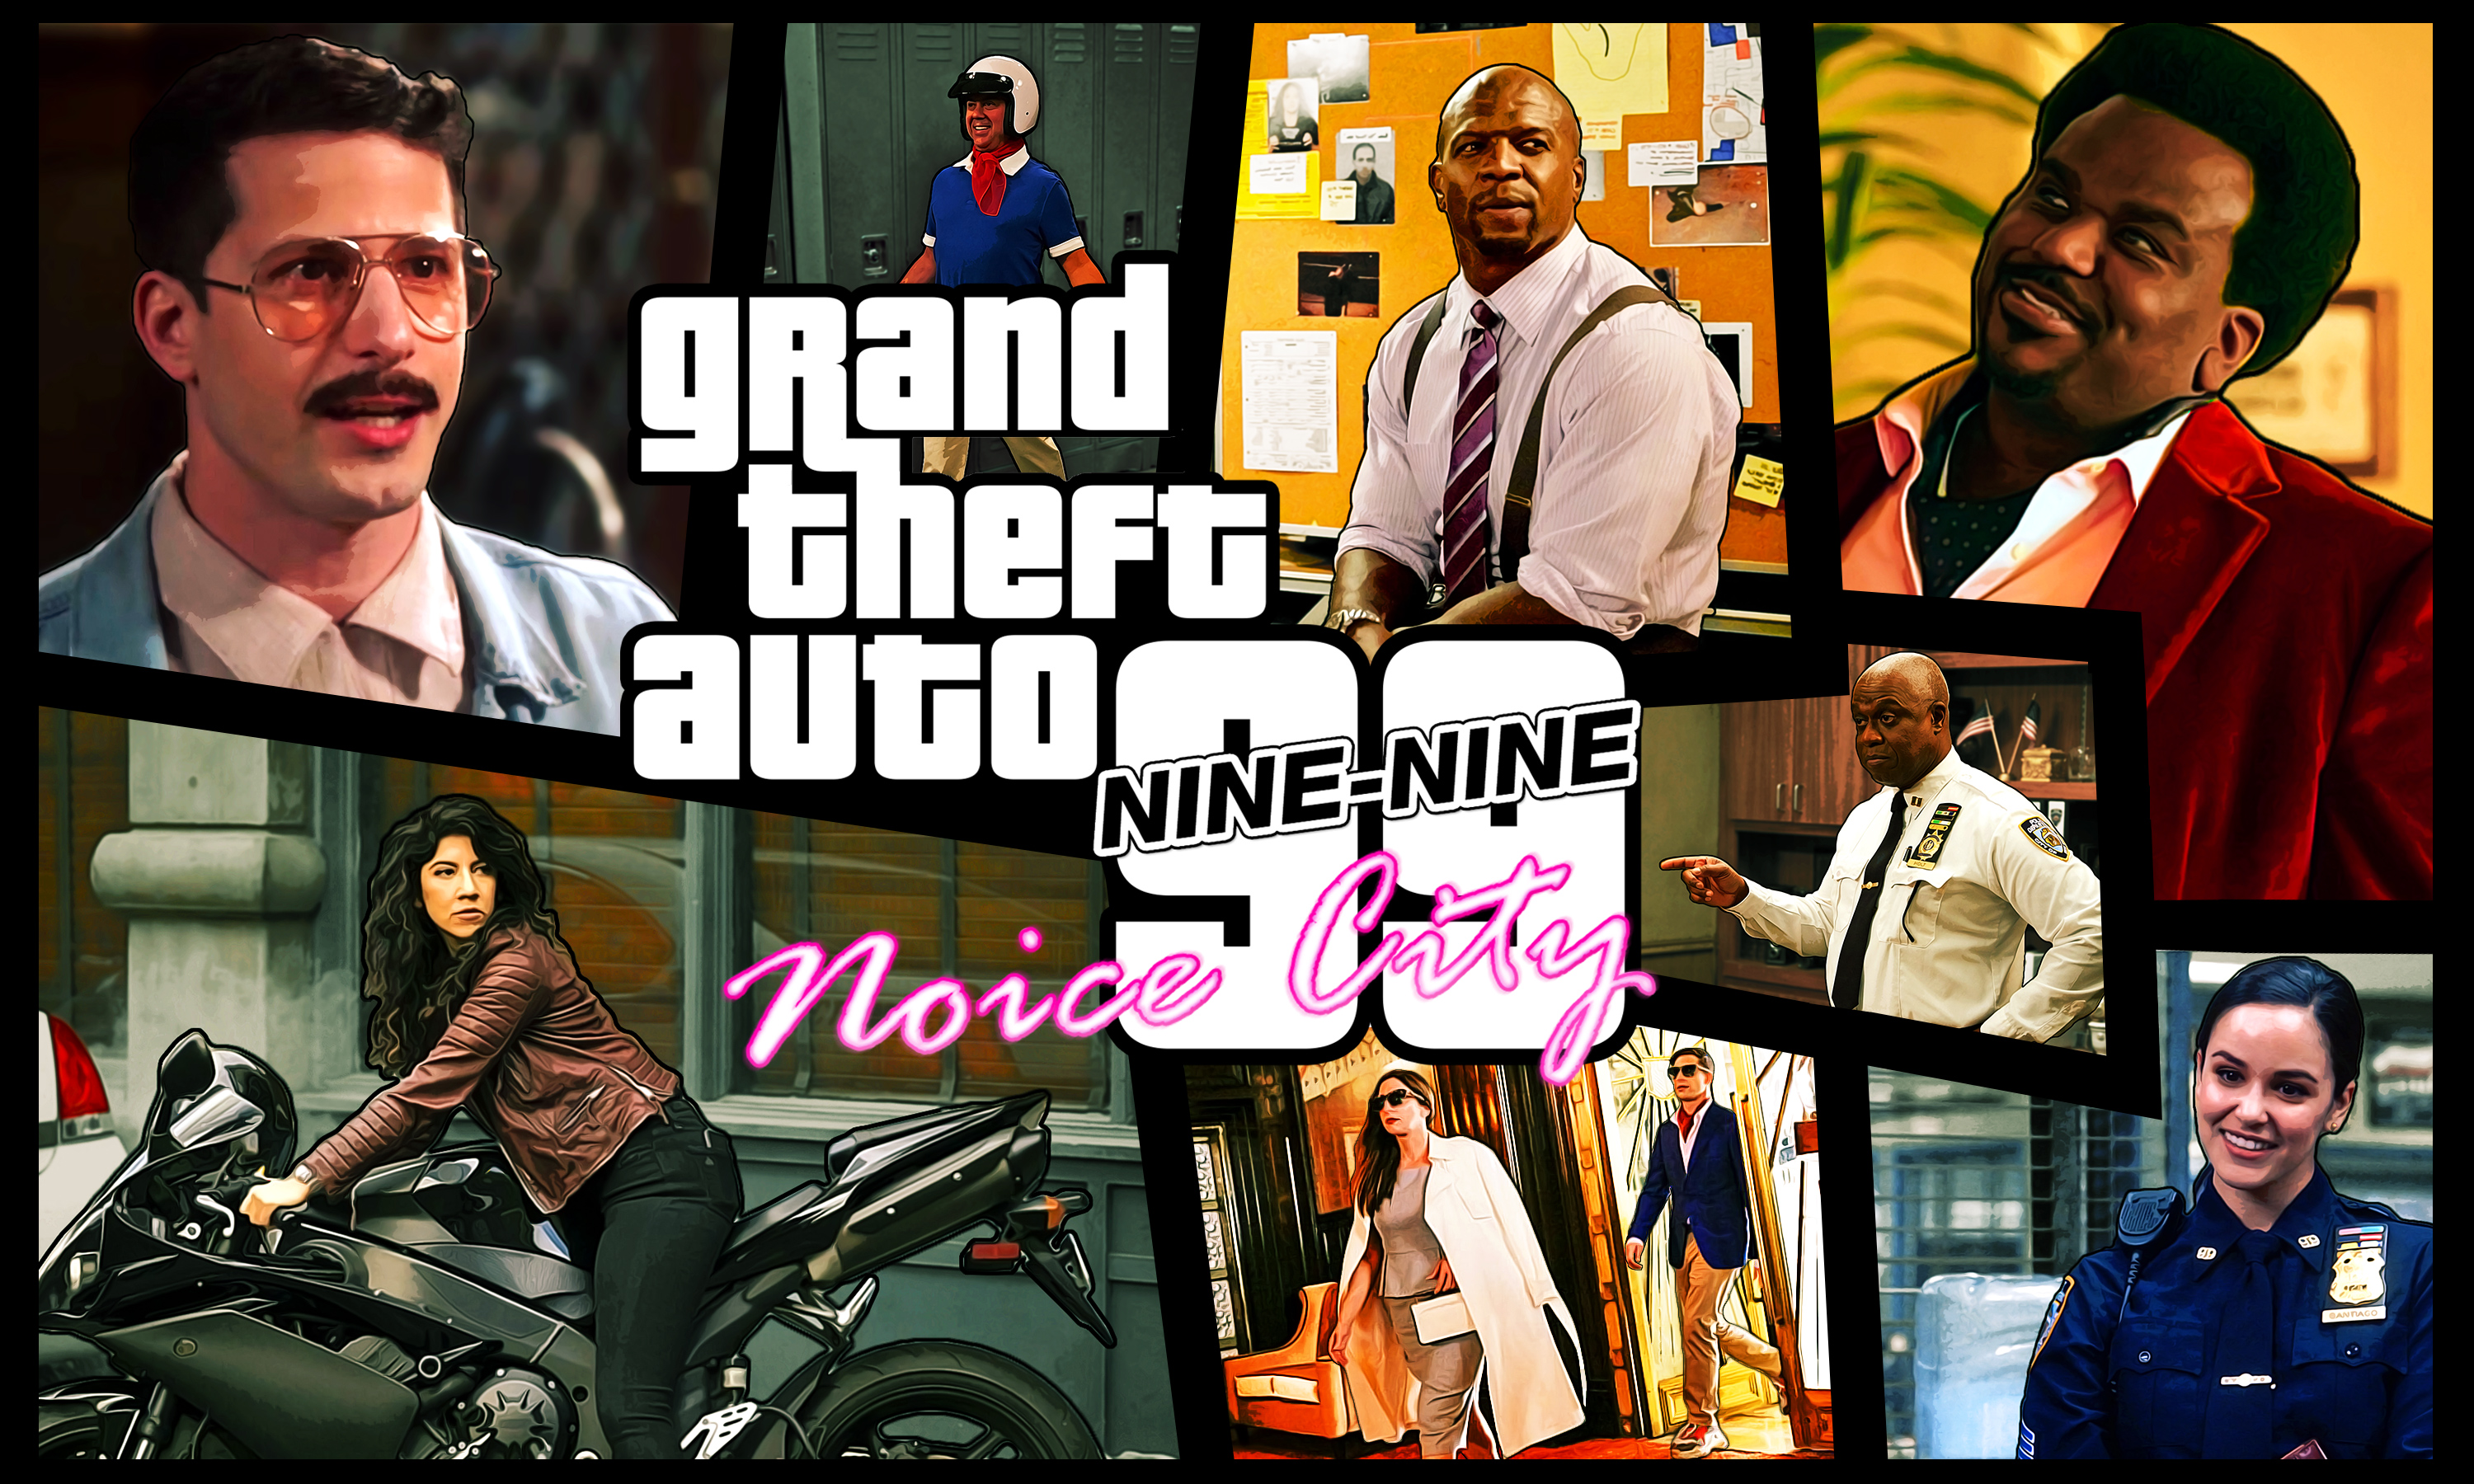 1920x1080 Brooklyn Nine Nine Gta 5 Laptop Full Hd 1080p Hd 4k